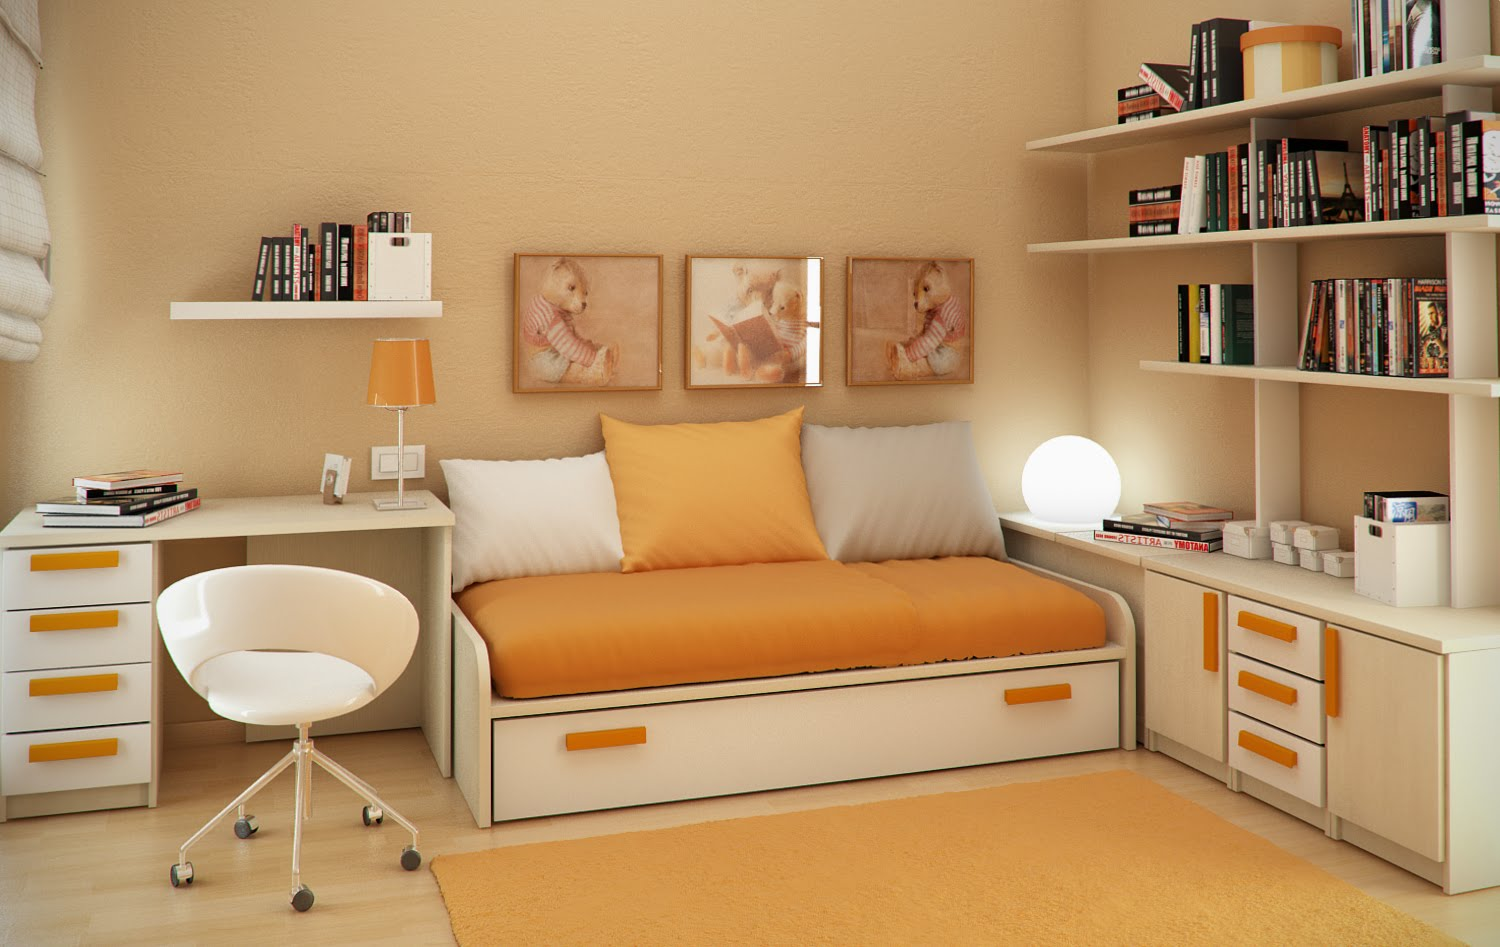 ... works here space saving ideas for small kids rooms kids room designs